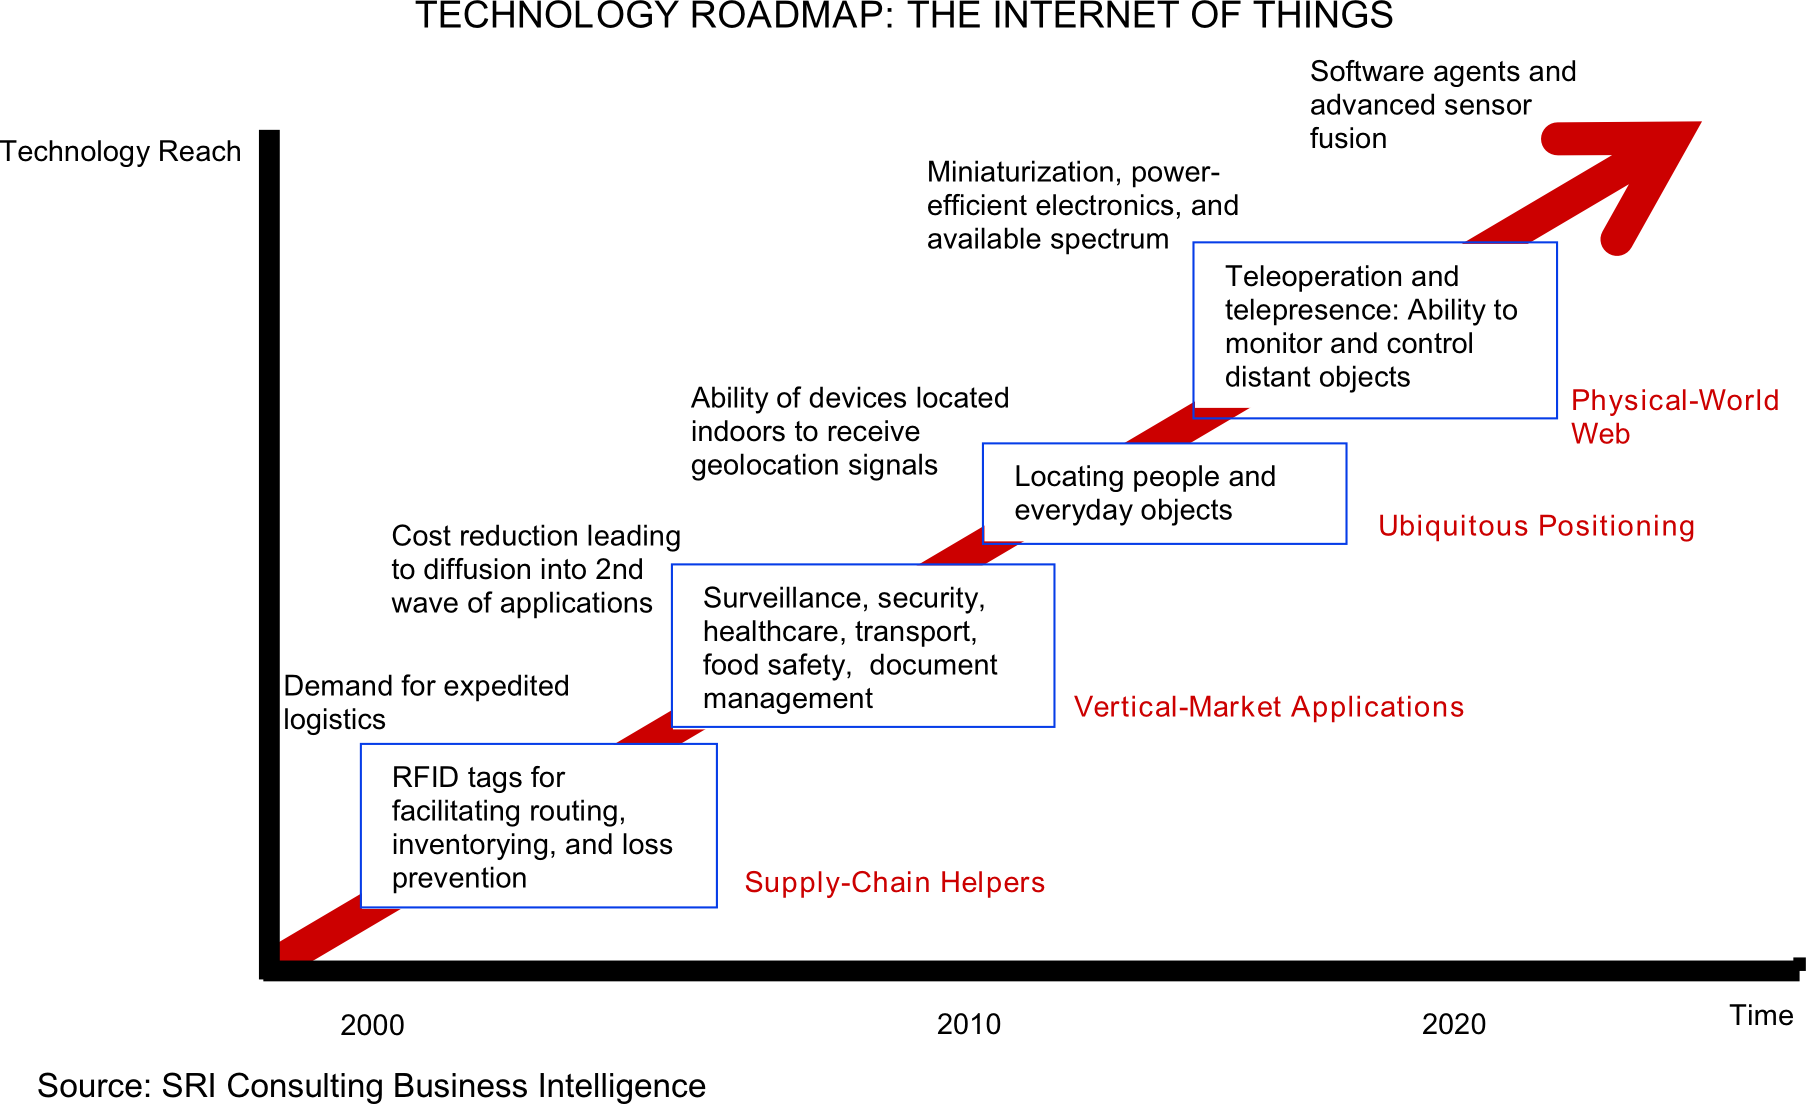 http://www.writework.com/uploads/11/119683/english-technology-roadmap-internet-things.png